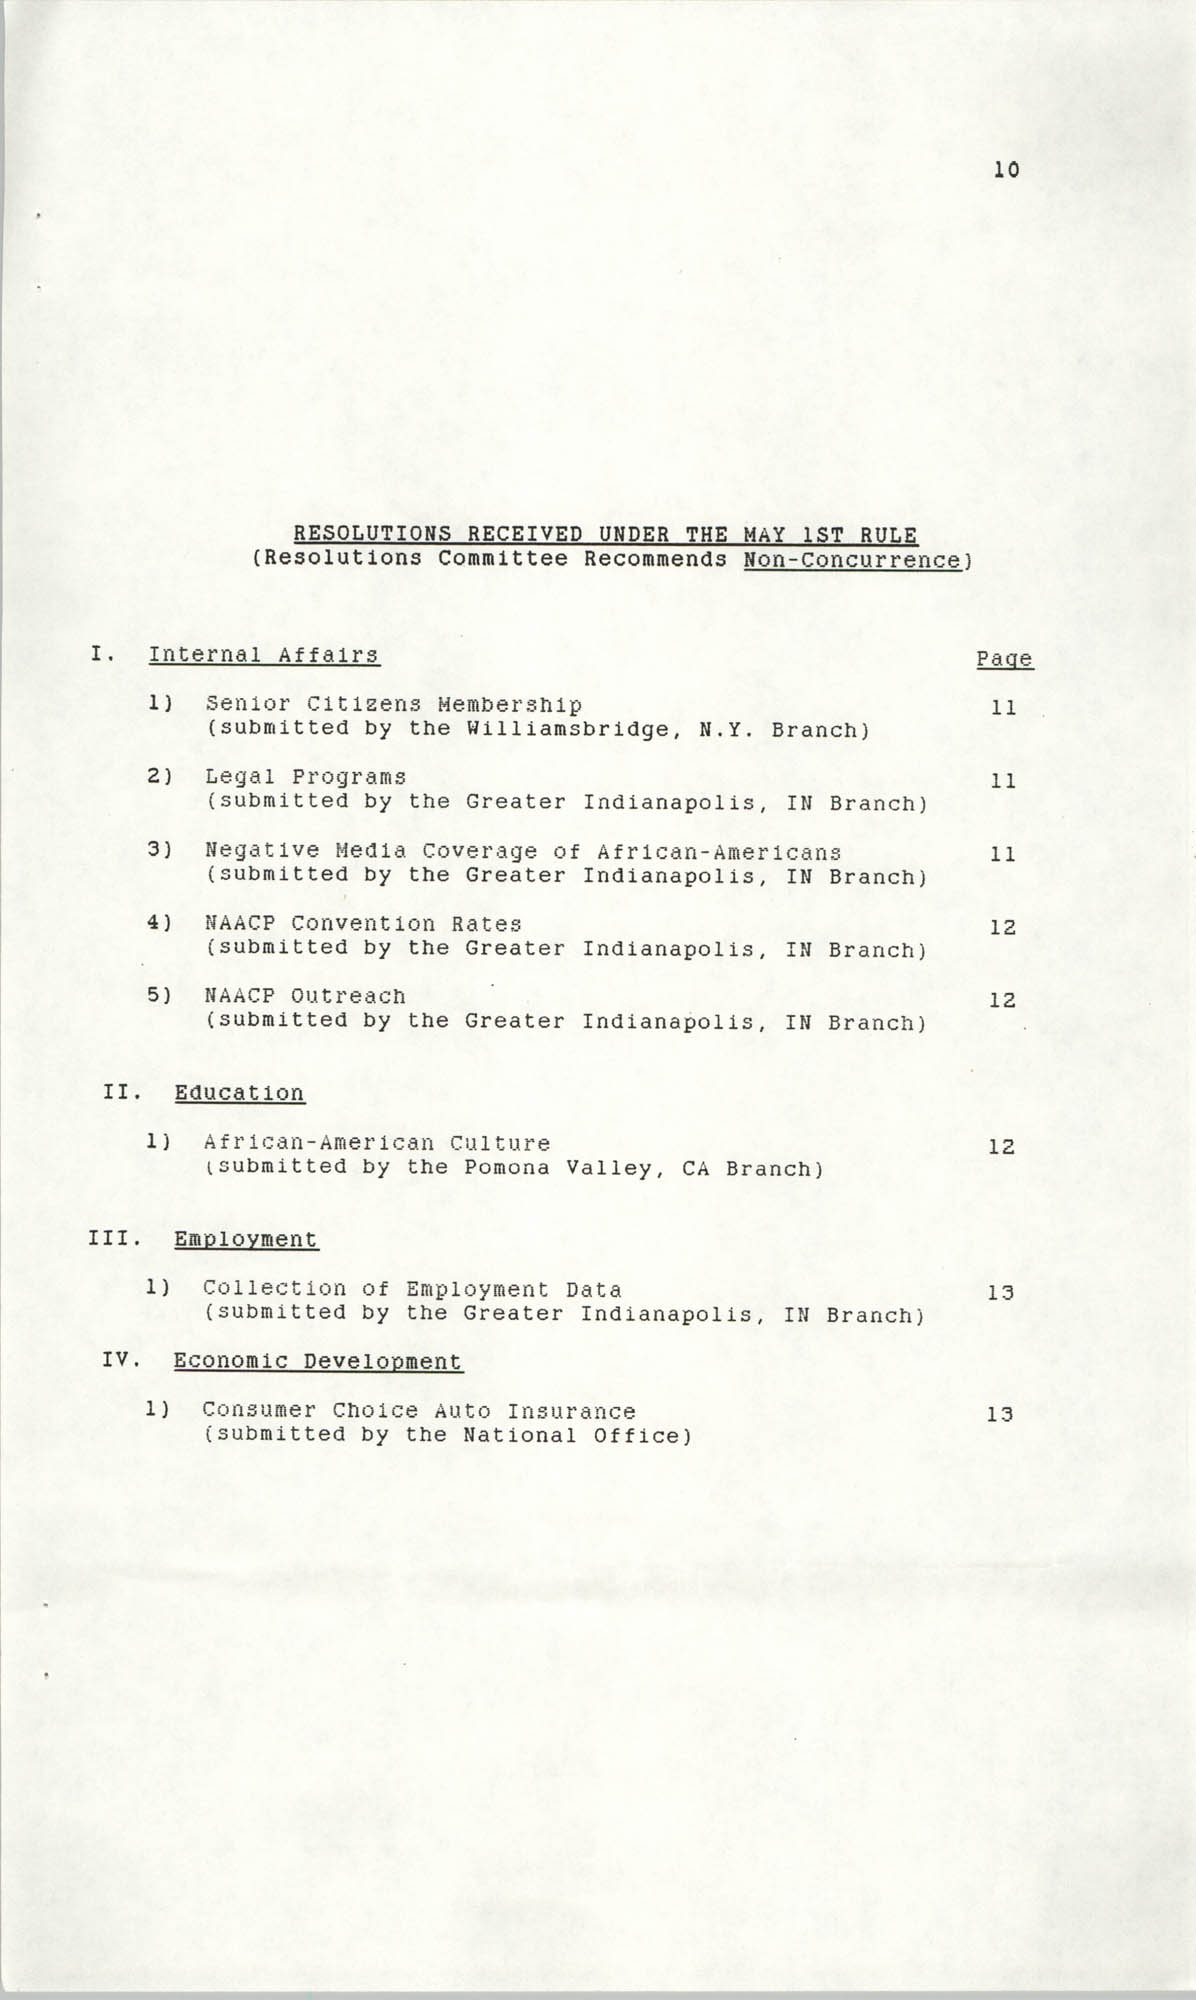 Resolutions Submitted Under Article X, Section 2 of the Constitution of the NAACP, 1990, Page 10